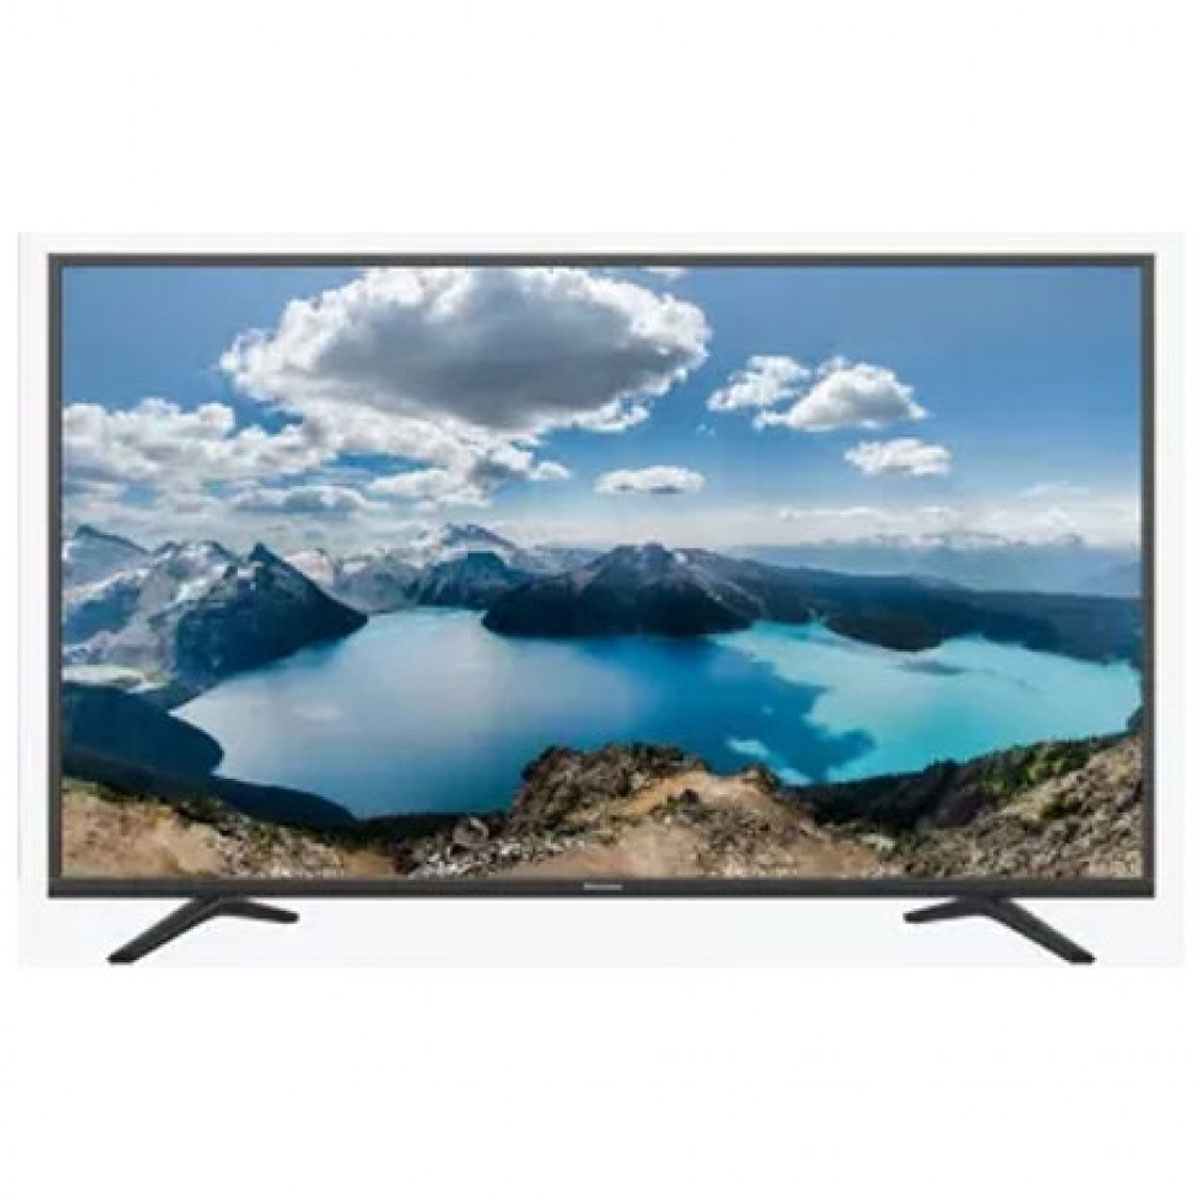 Hisense 32 Inch Smart FULL HD LED TV (32E5600EA)